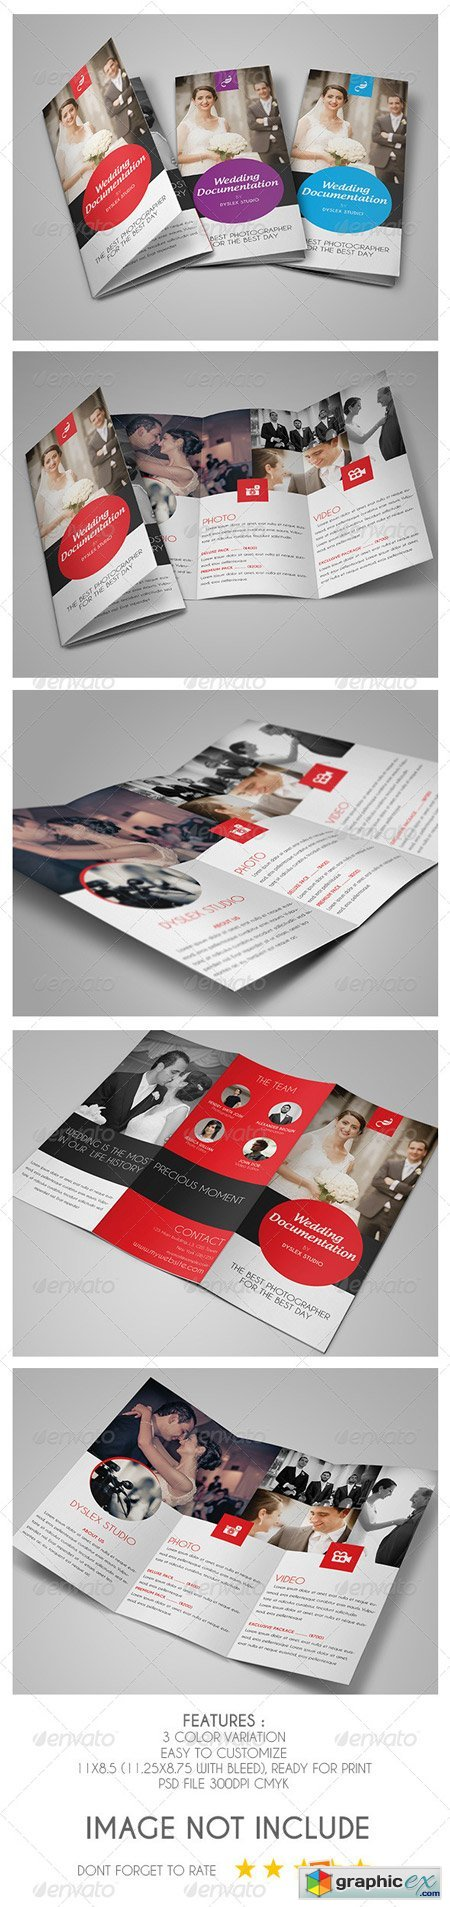 Wedding Documentation Trifold